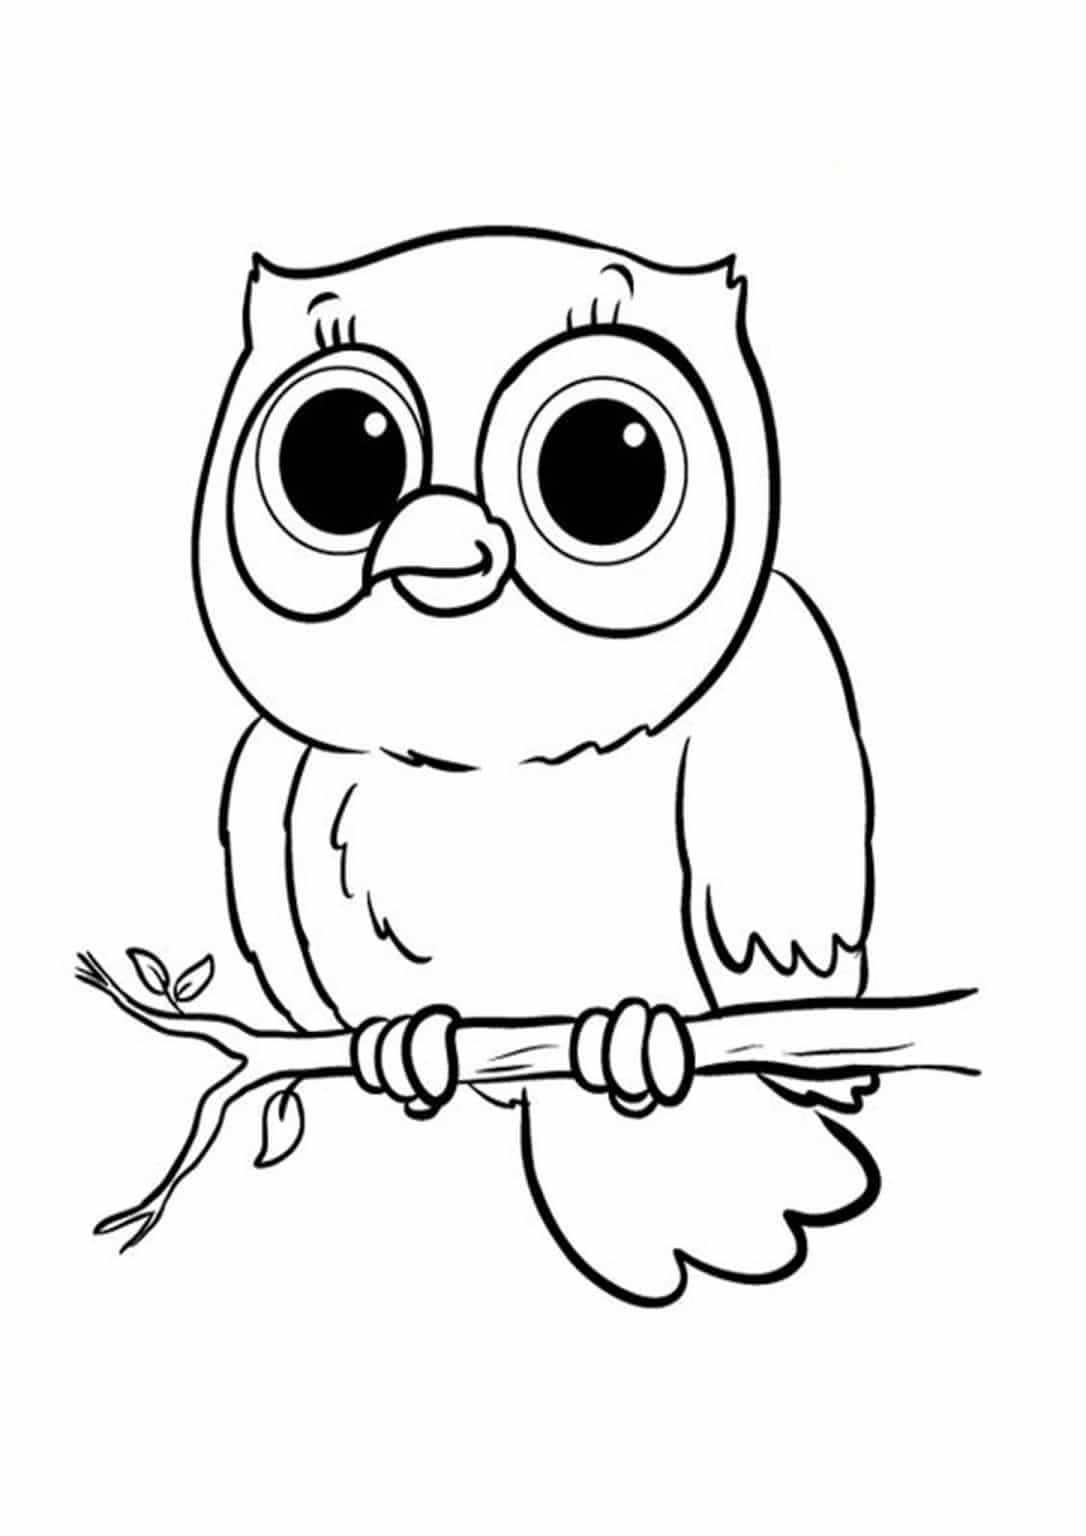 easy cute owl coloring pages free easy to print owl coloring pages owl coloring coloring easy owl pages cute